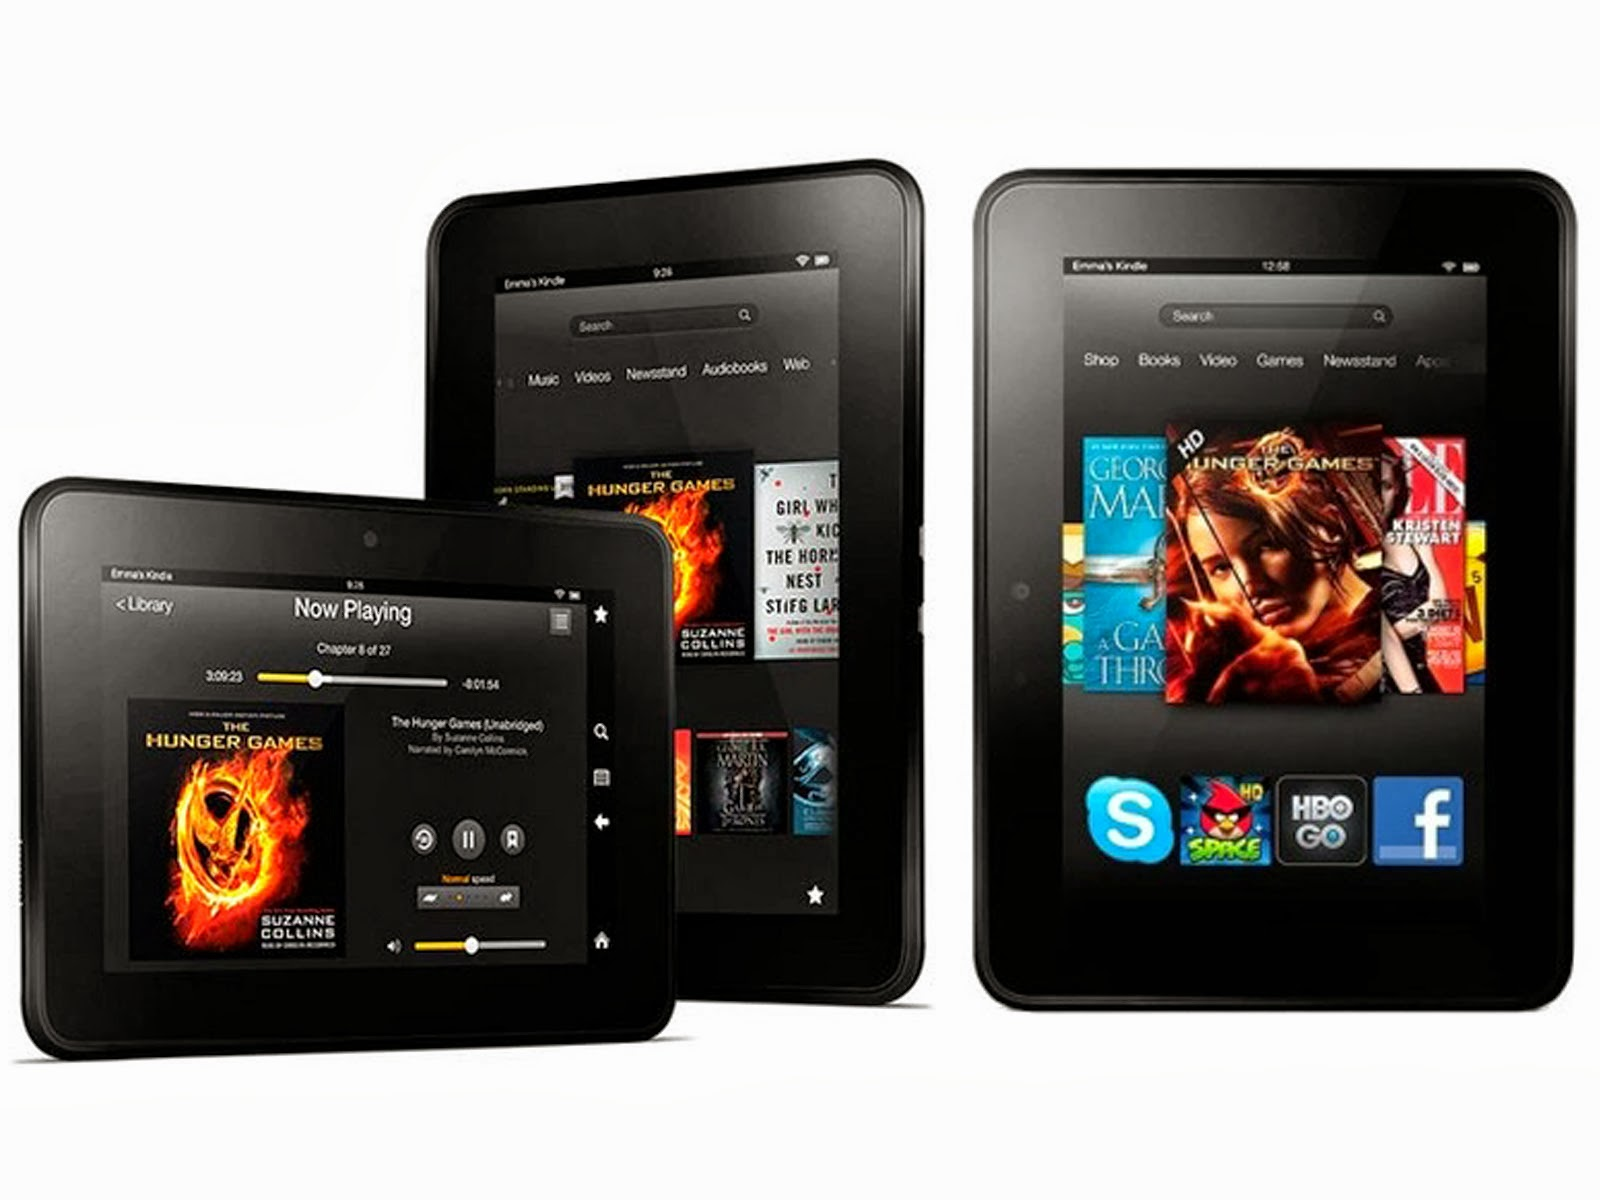 Amazon unveiled its Kindle Fire tablet HDX available in two formats. The first has a 7-inch display that delivers a resolution of 1920 x 1200 pixels (323 ppi). The second is equipped with a screen of 8.9 inches with a resolution of 2560 x 1600 pixels (339 ppi). Both are suitable for reading in the sun with their brightest screens and a dynamic contrast control that increases the brightness of the shadow areas of images